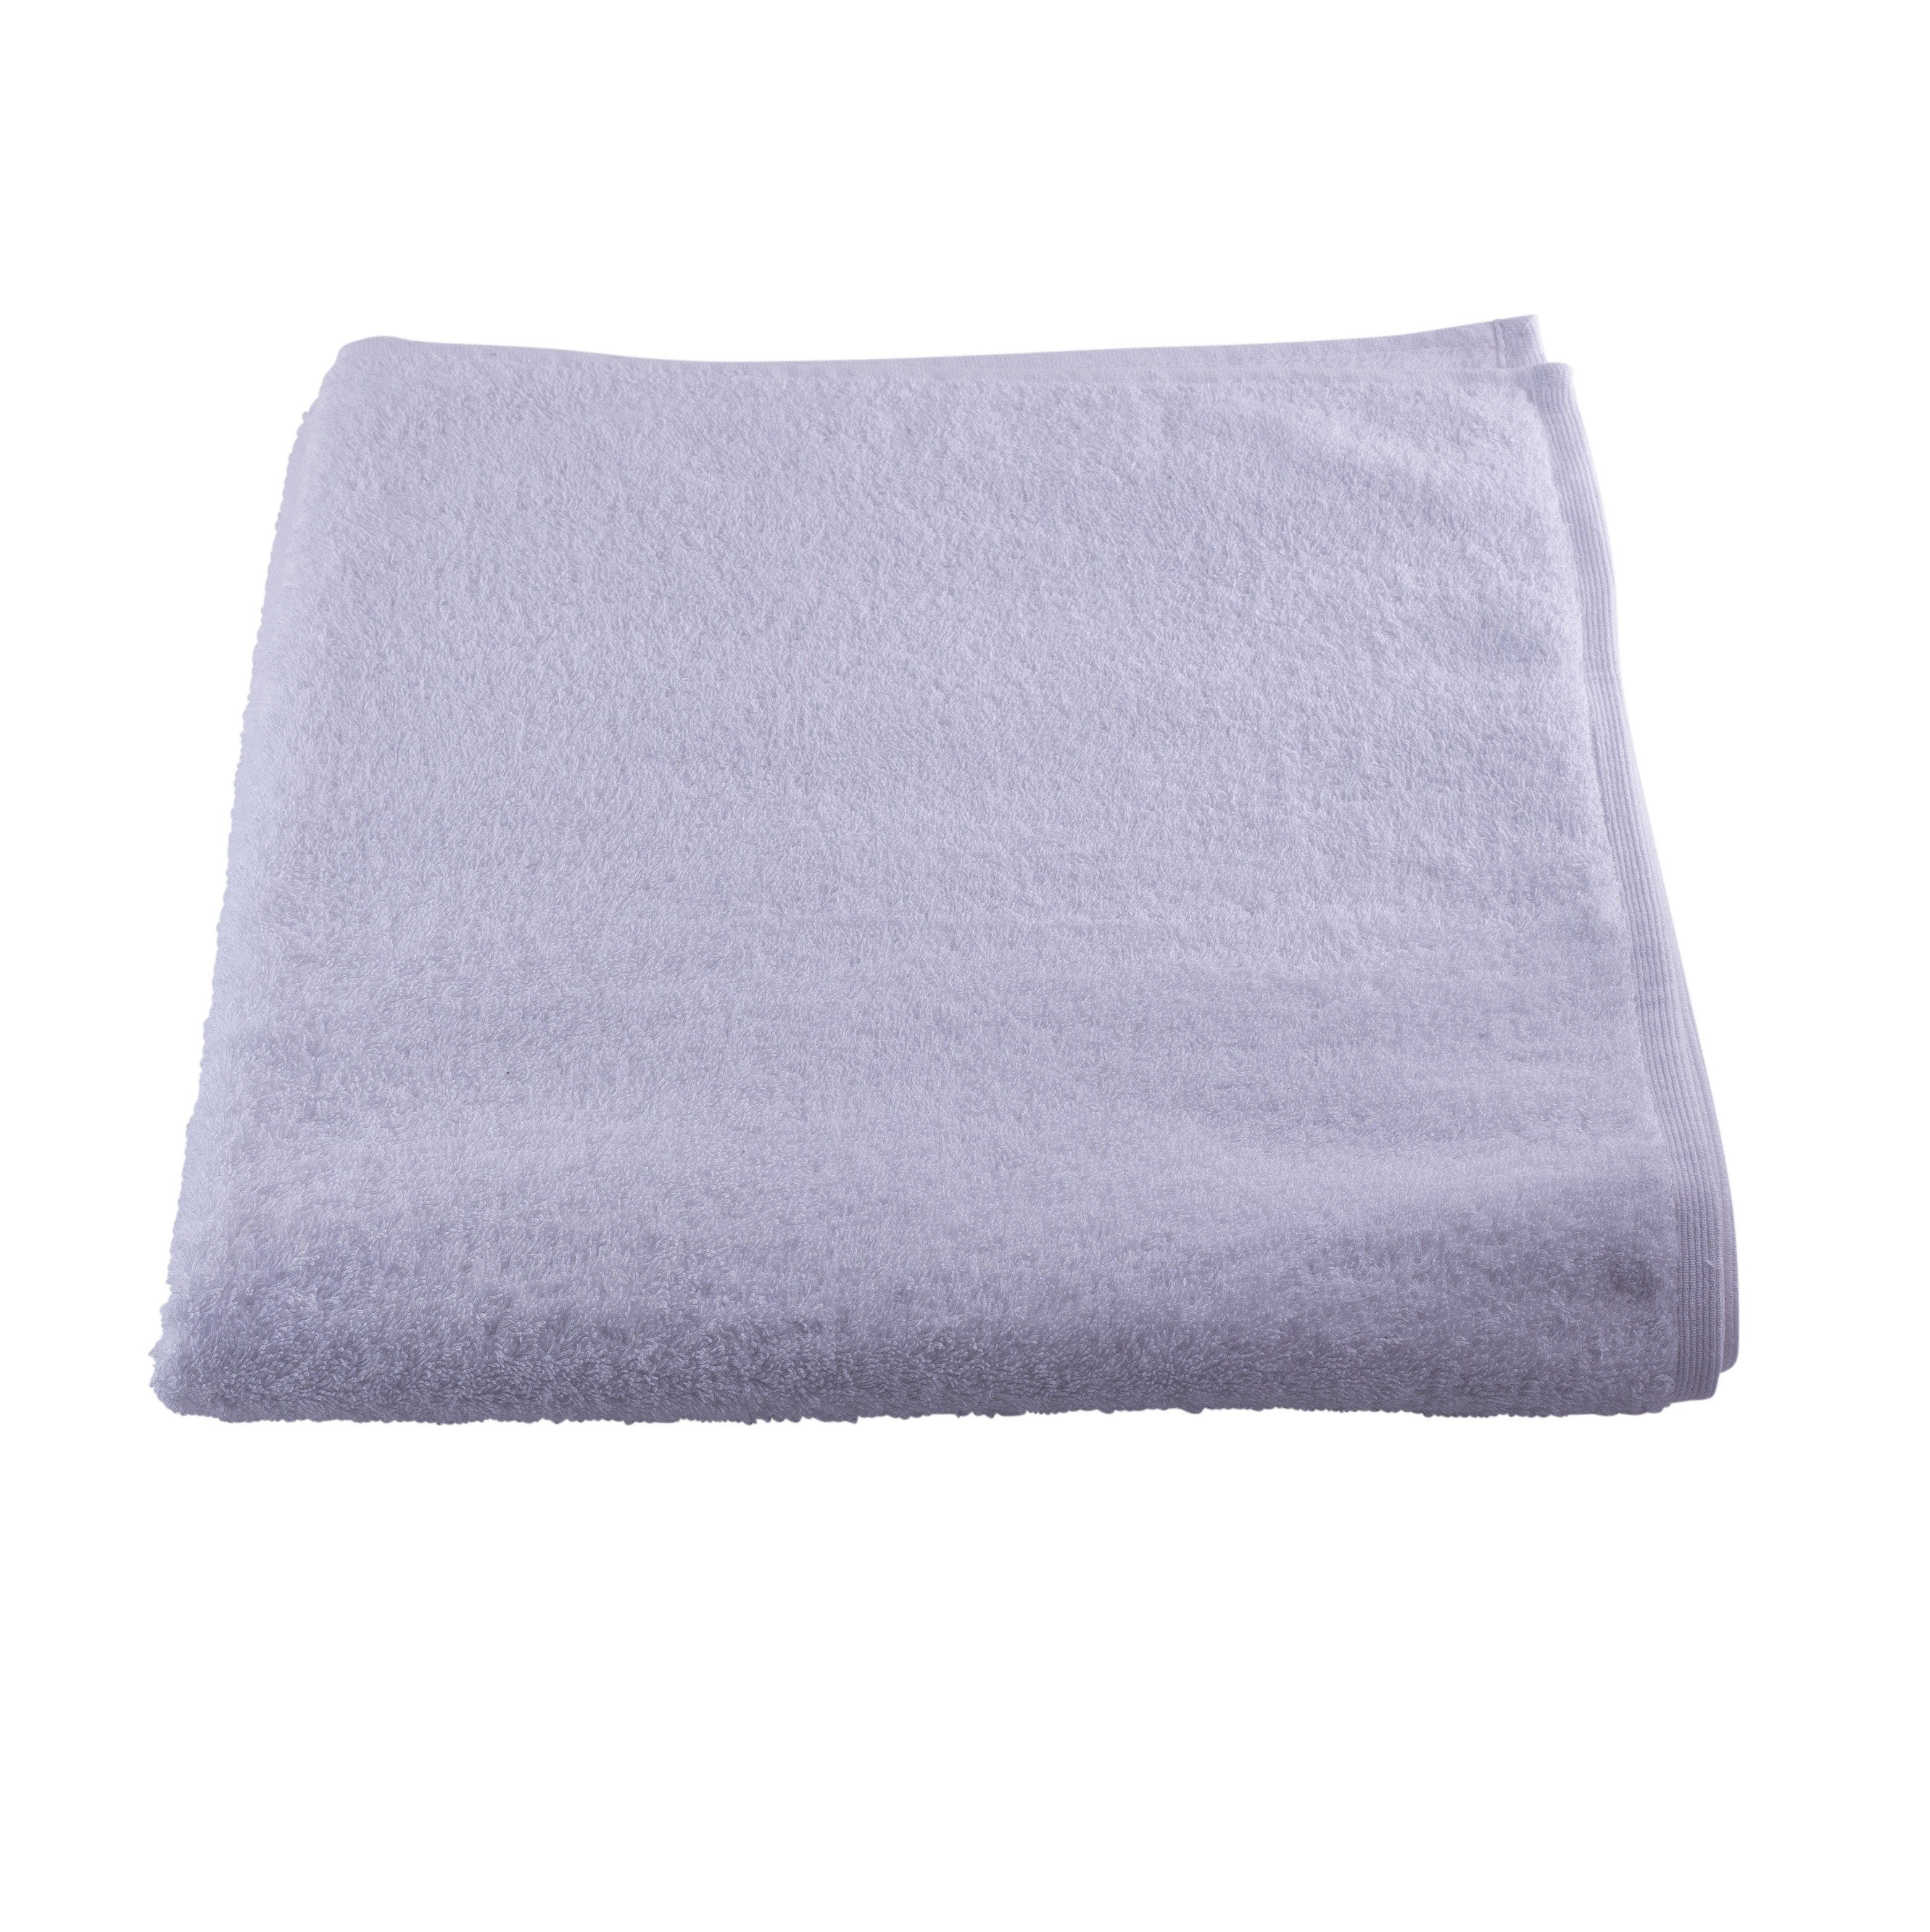 Bath Sheet Ultra White